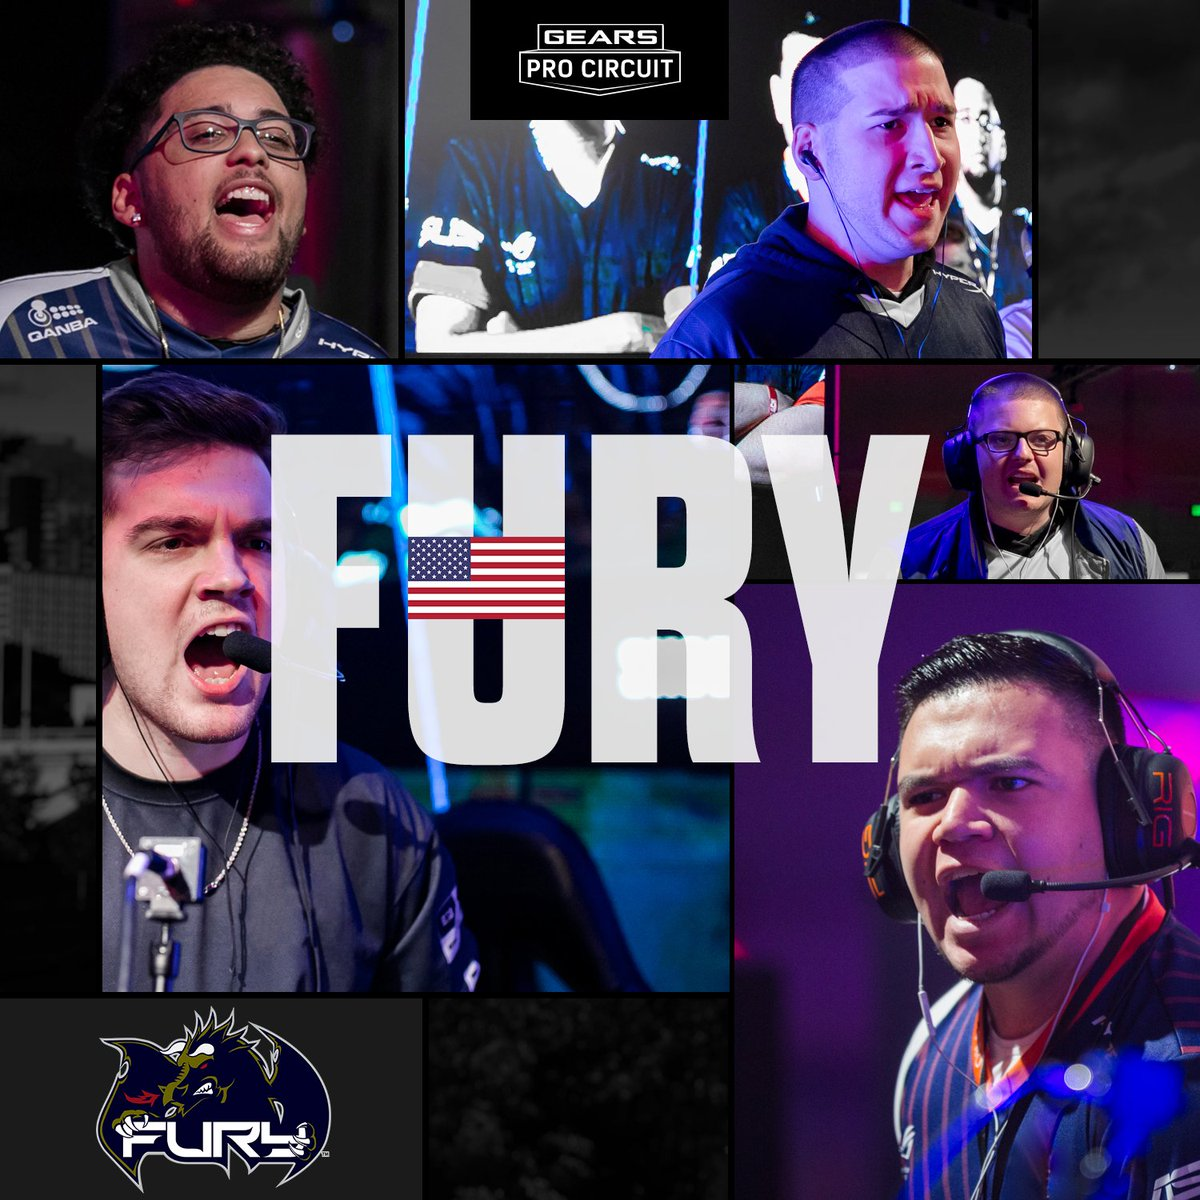 LIVE NOW - Two of this weekend's hottest teams battle it out with a trip to the Grand Final on the line with #Fury vs @TheRiseNation  WATCH - http://live.gearsofwar.com